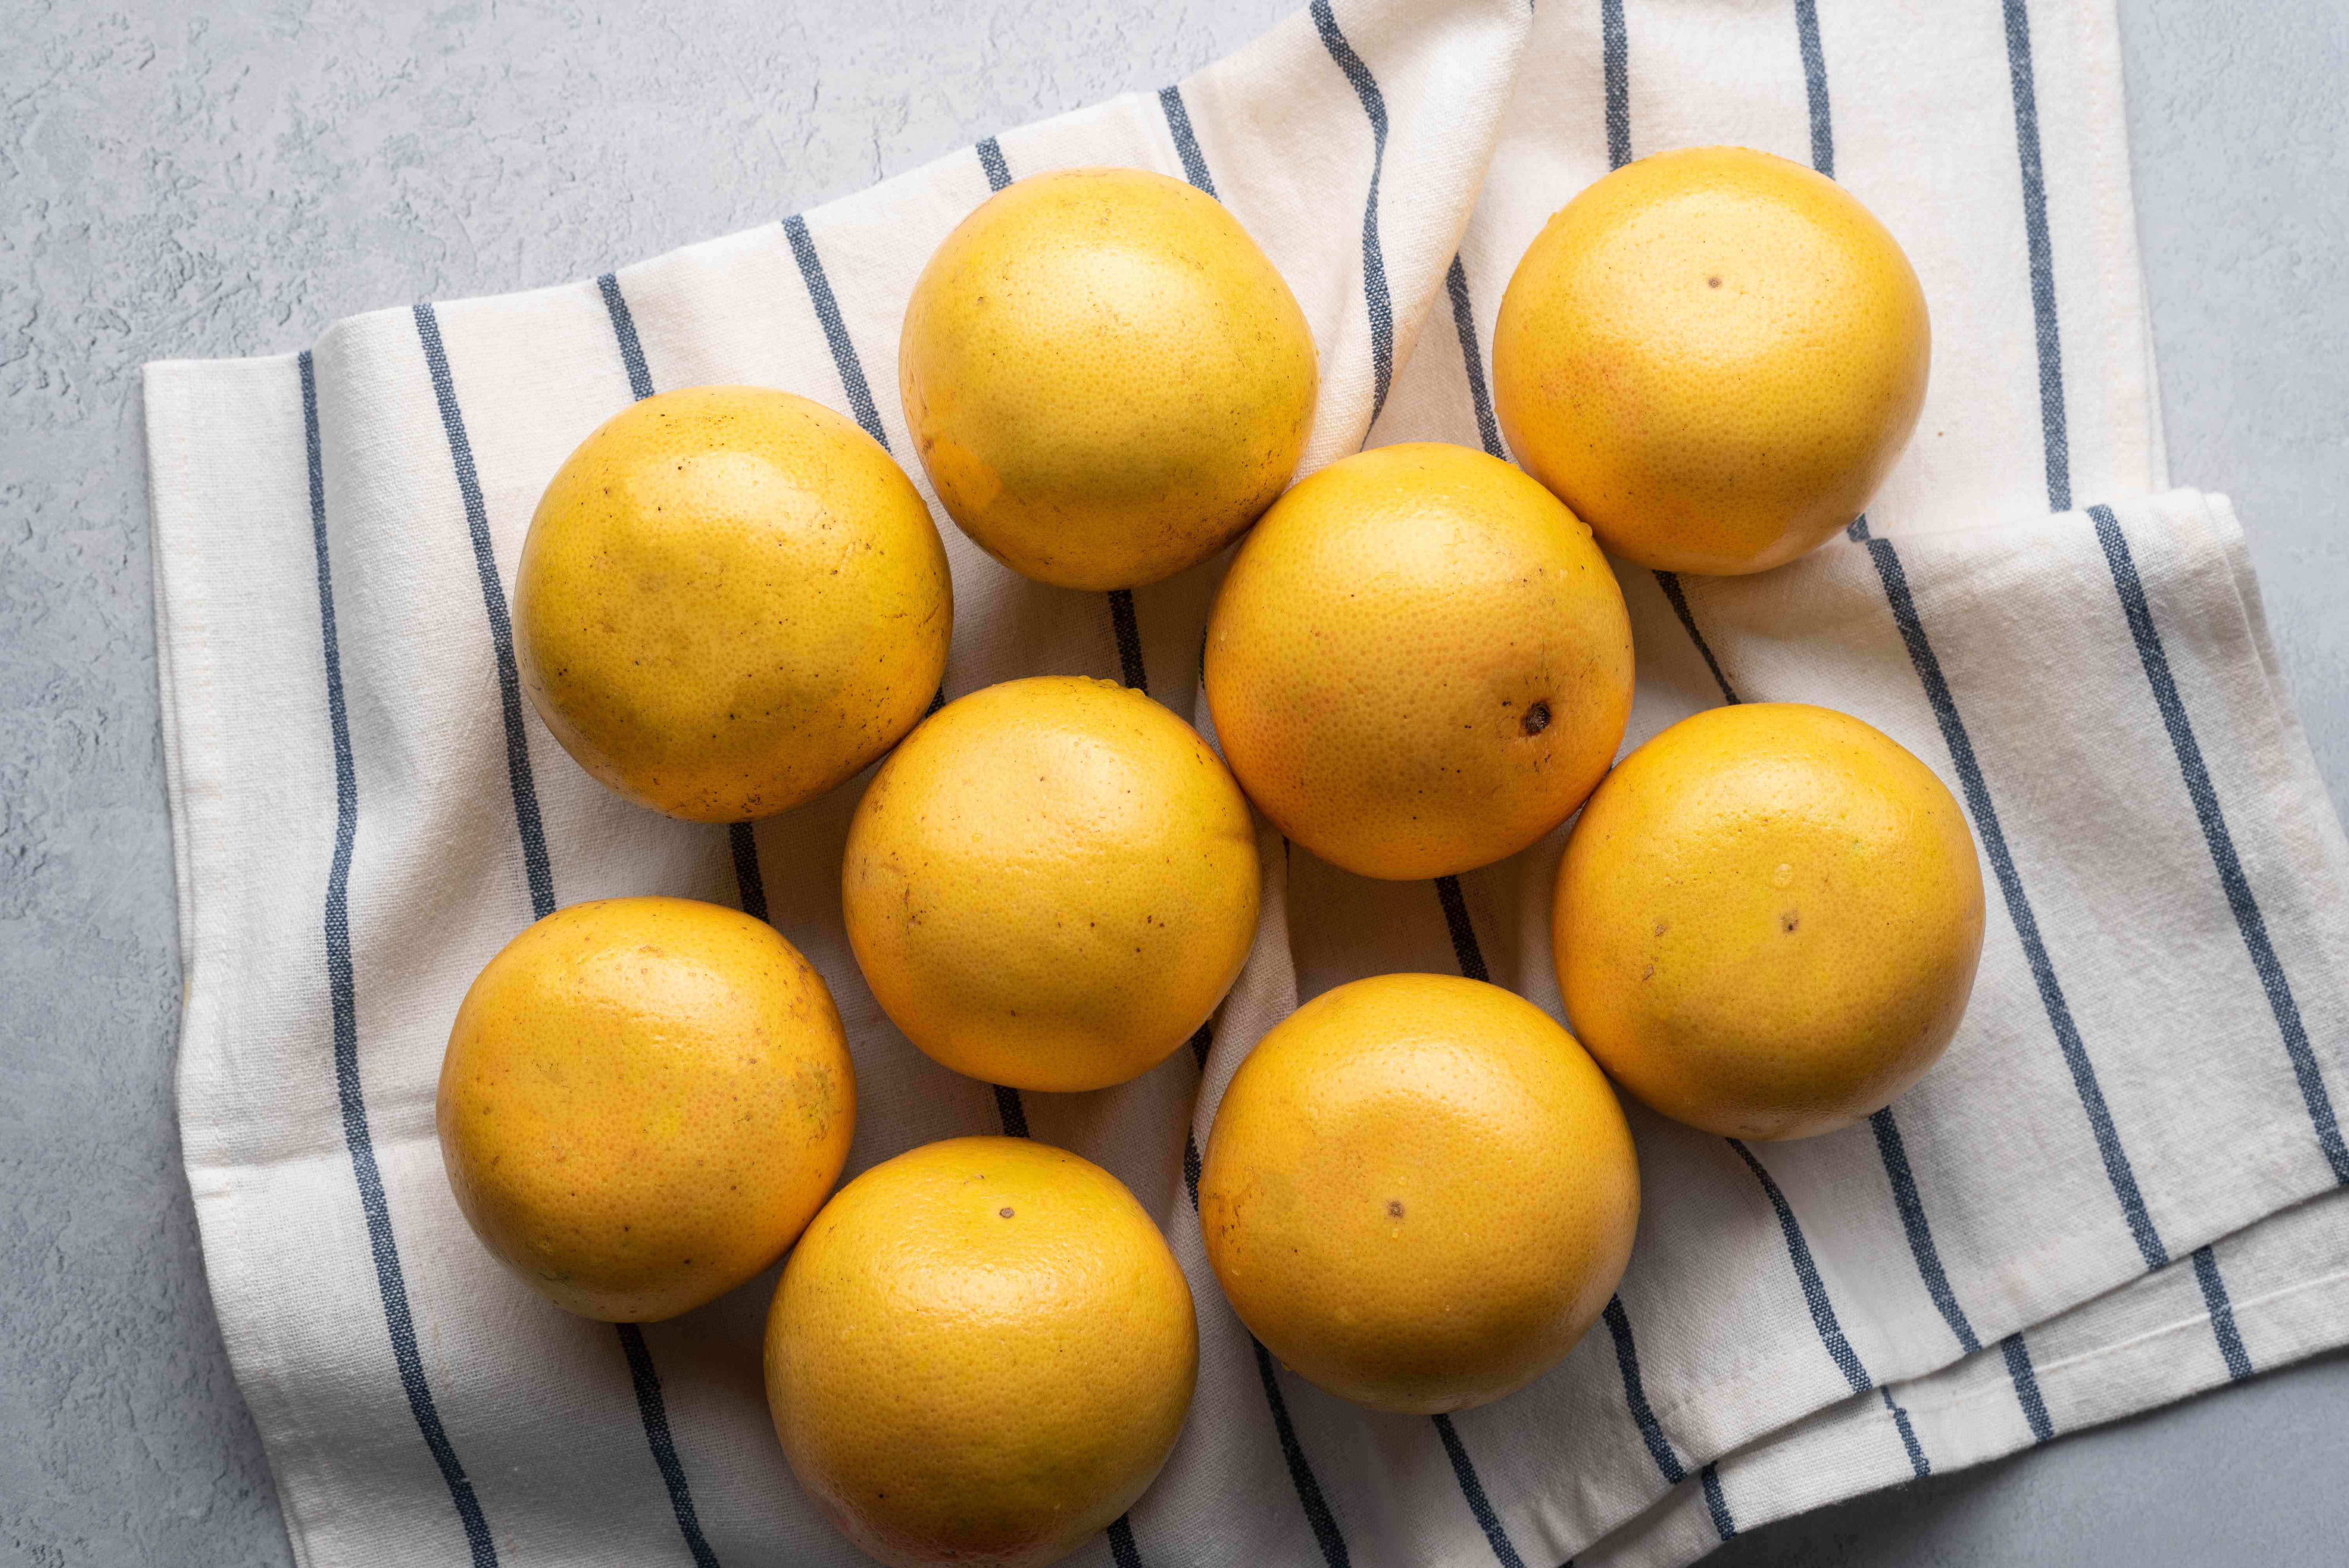 washed and dried grapefruits